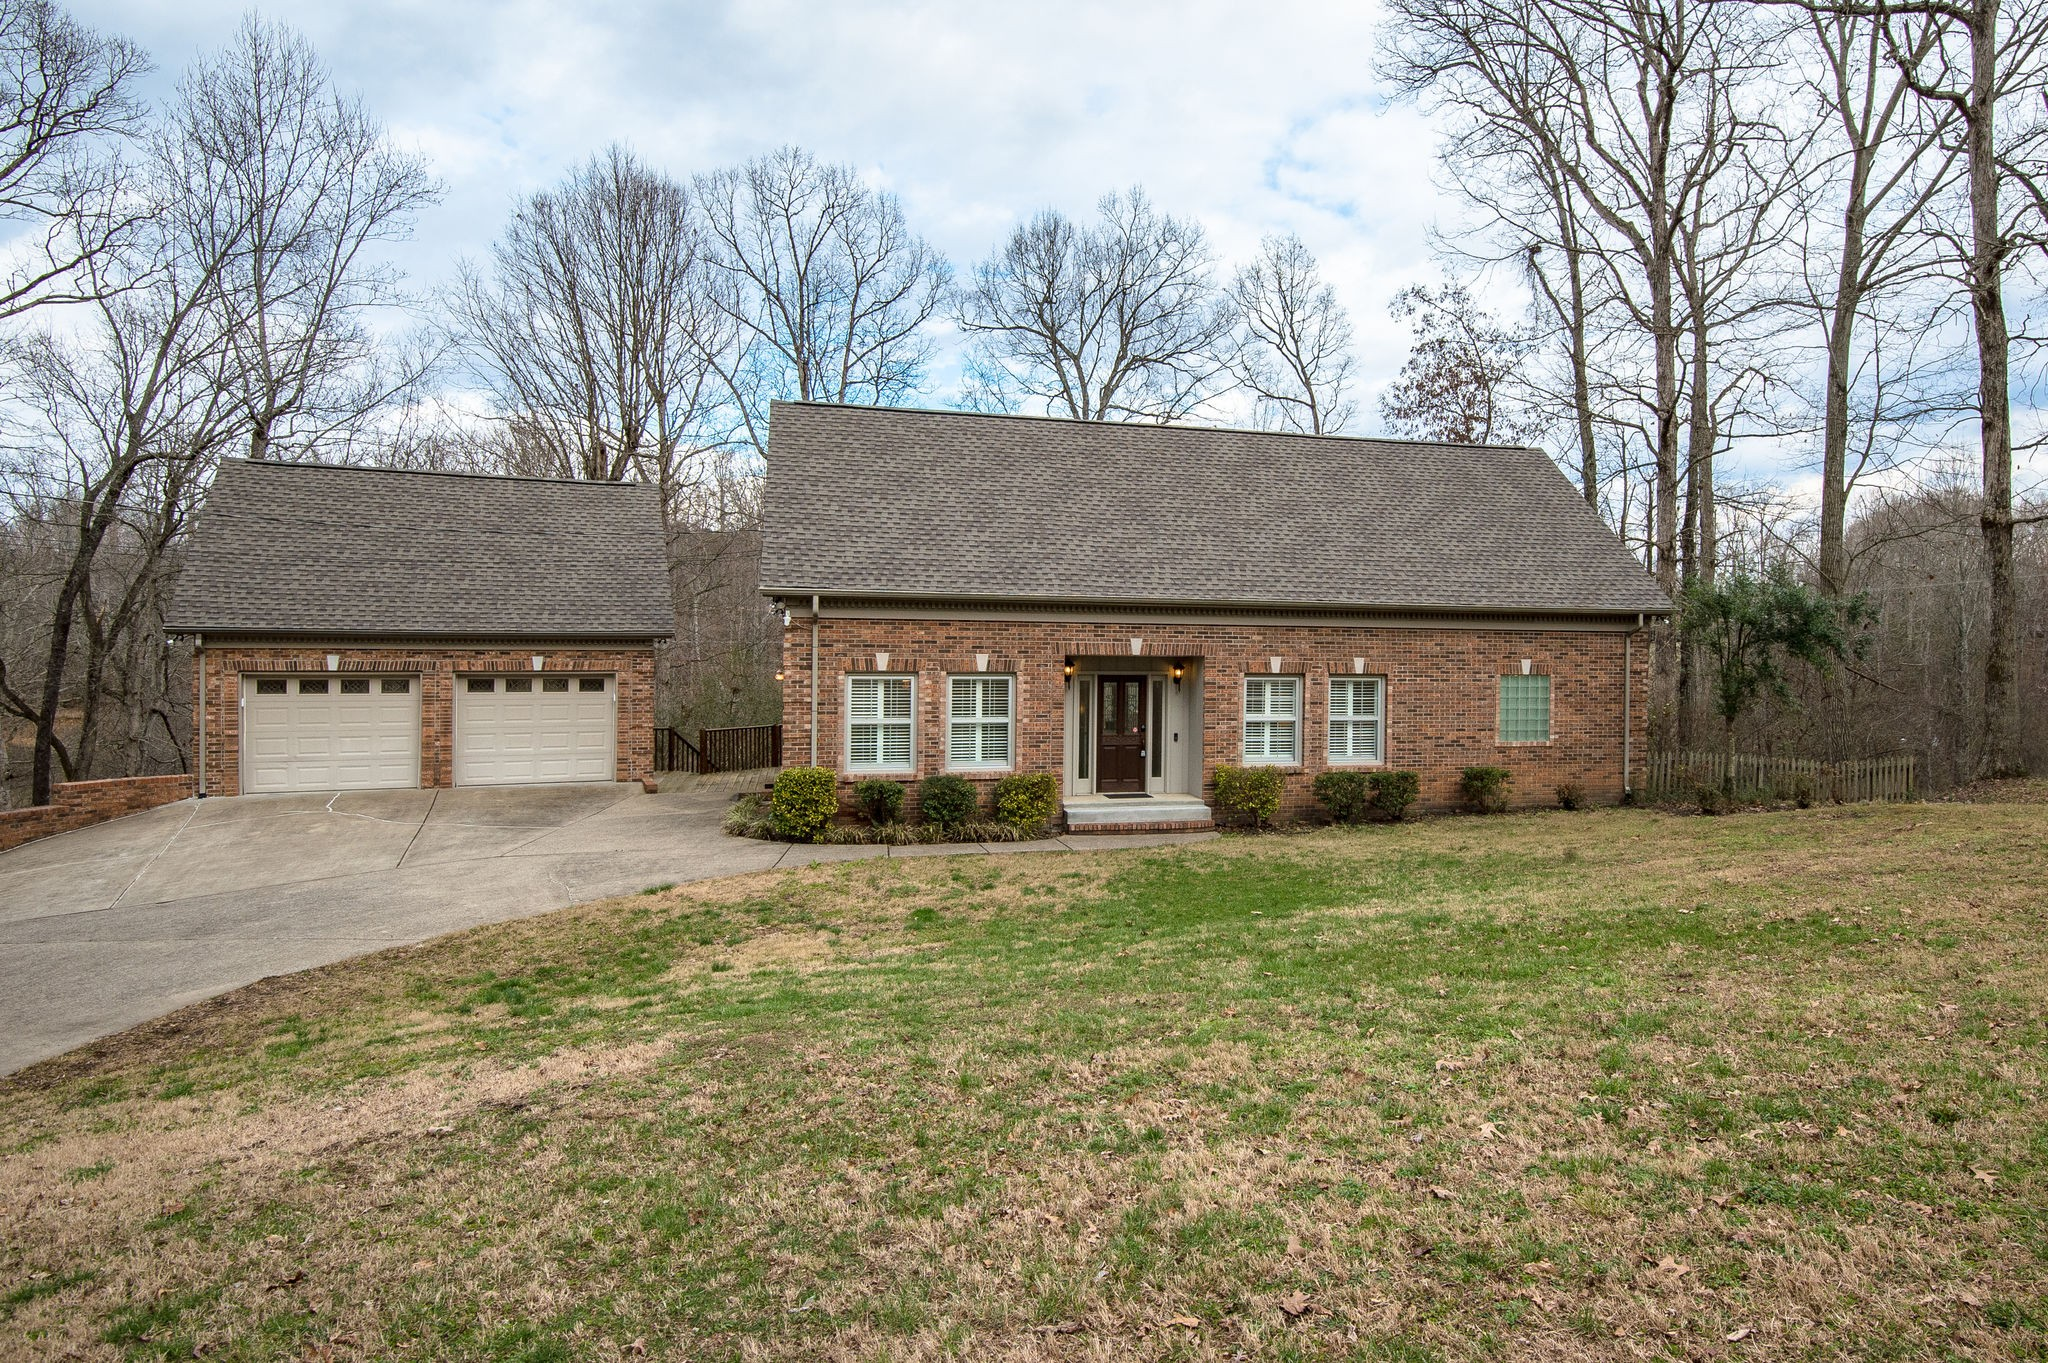 210 Kimberly Dr, Dickson, TN 37055 - Dickson, TN real estate listing